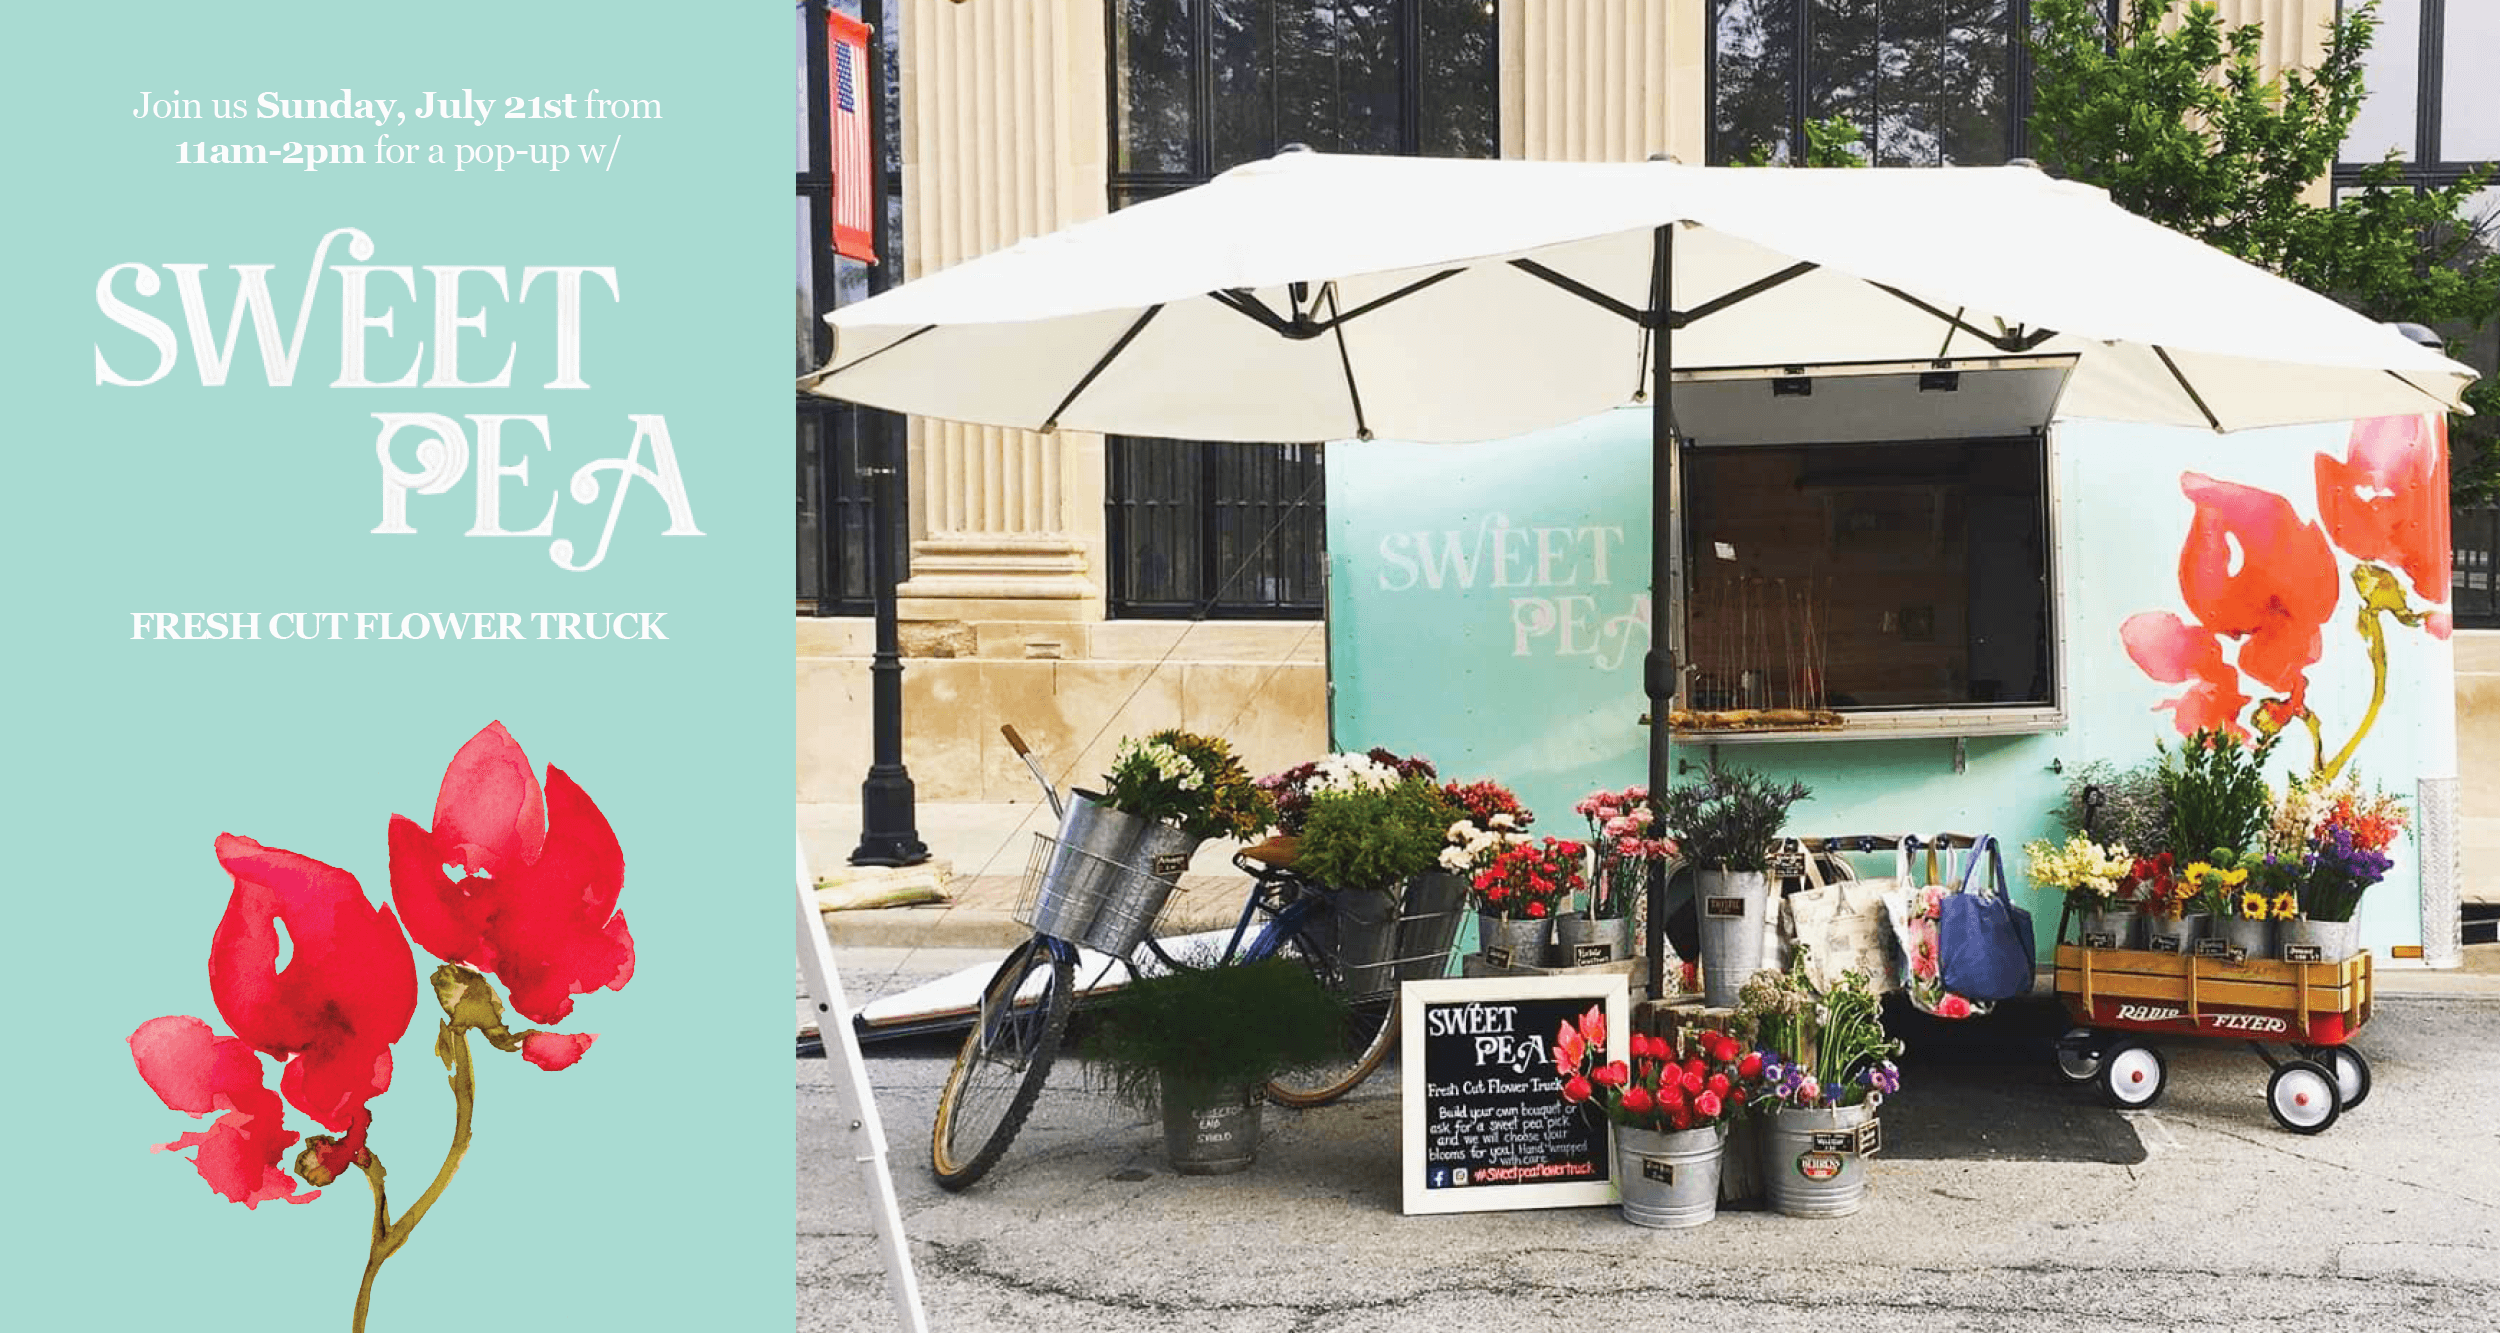 Sweet Pea Flower Truck Pop-Up